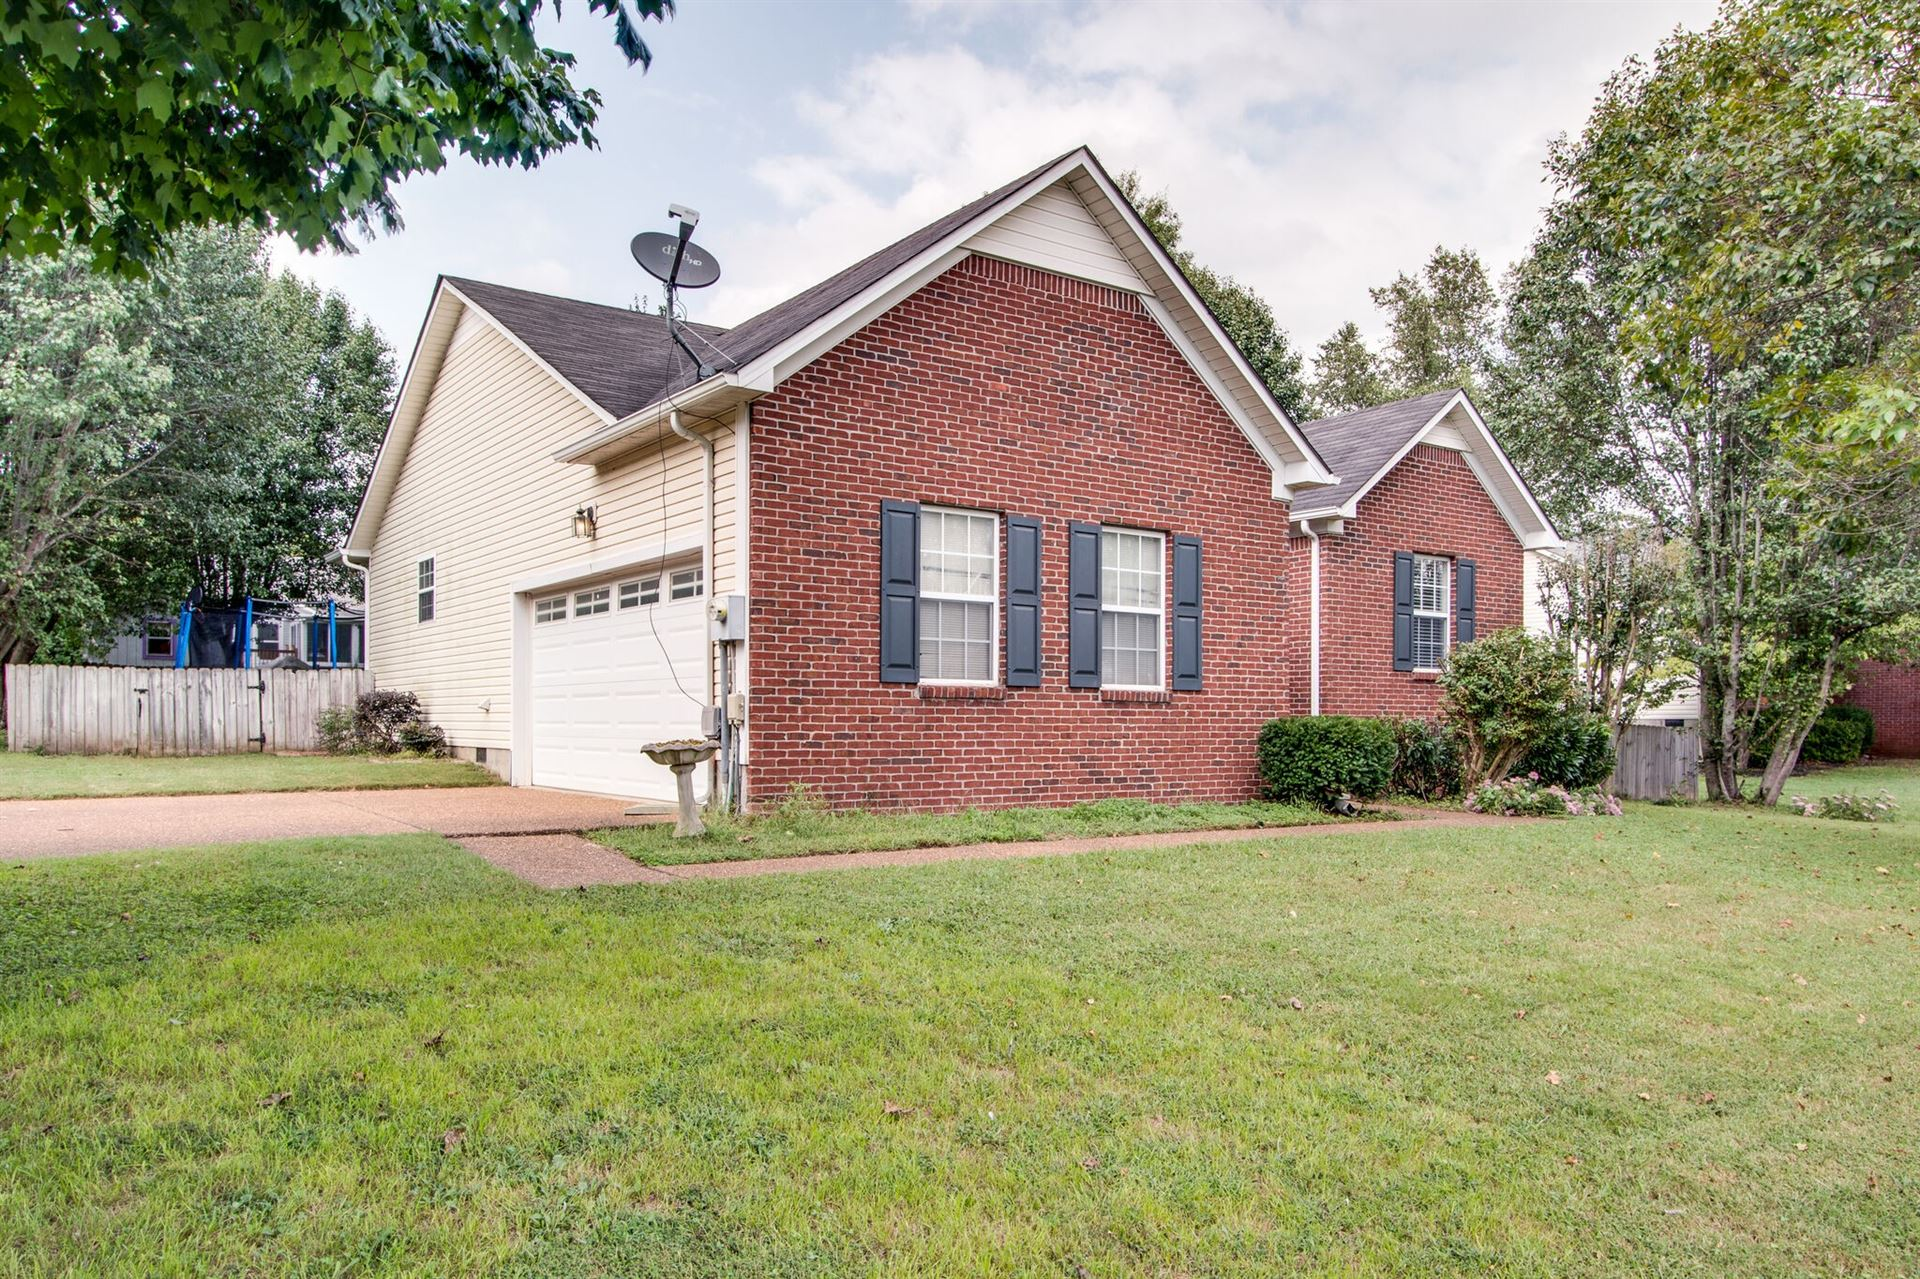 Photo of 2980 Augusta Trace Dr, Spring Hill, TN 37174 (MLS # 2190326)